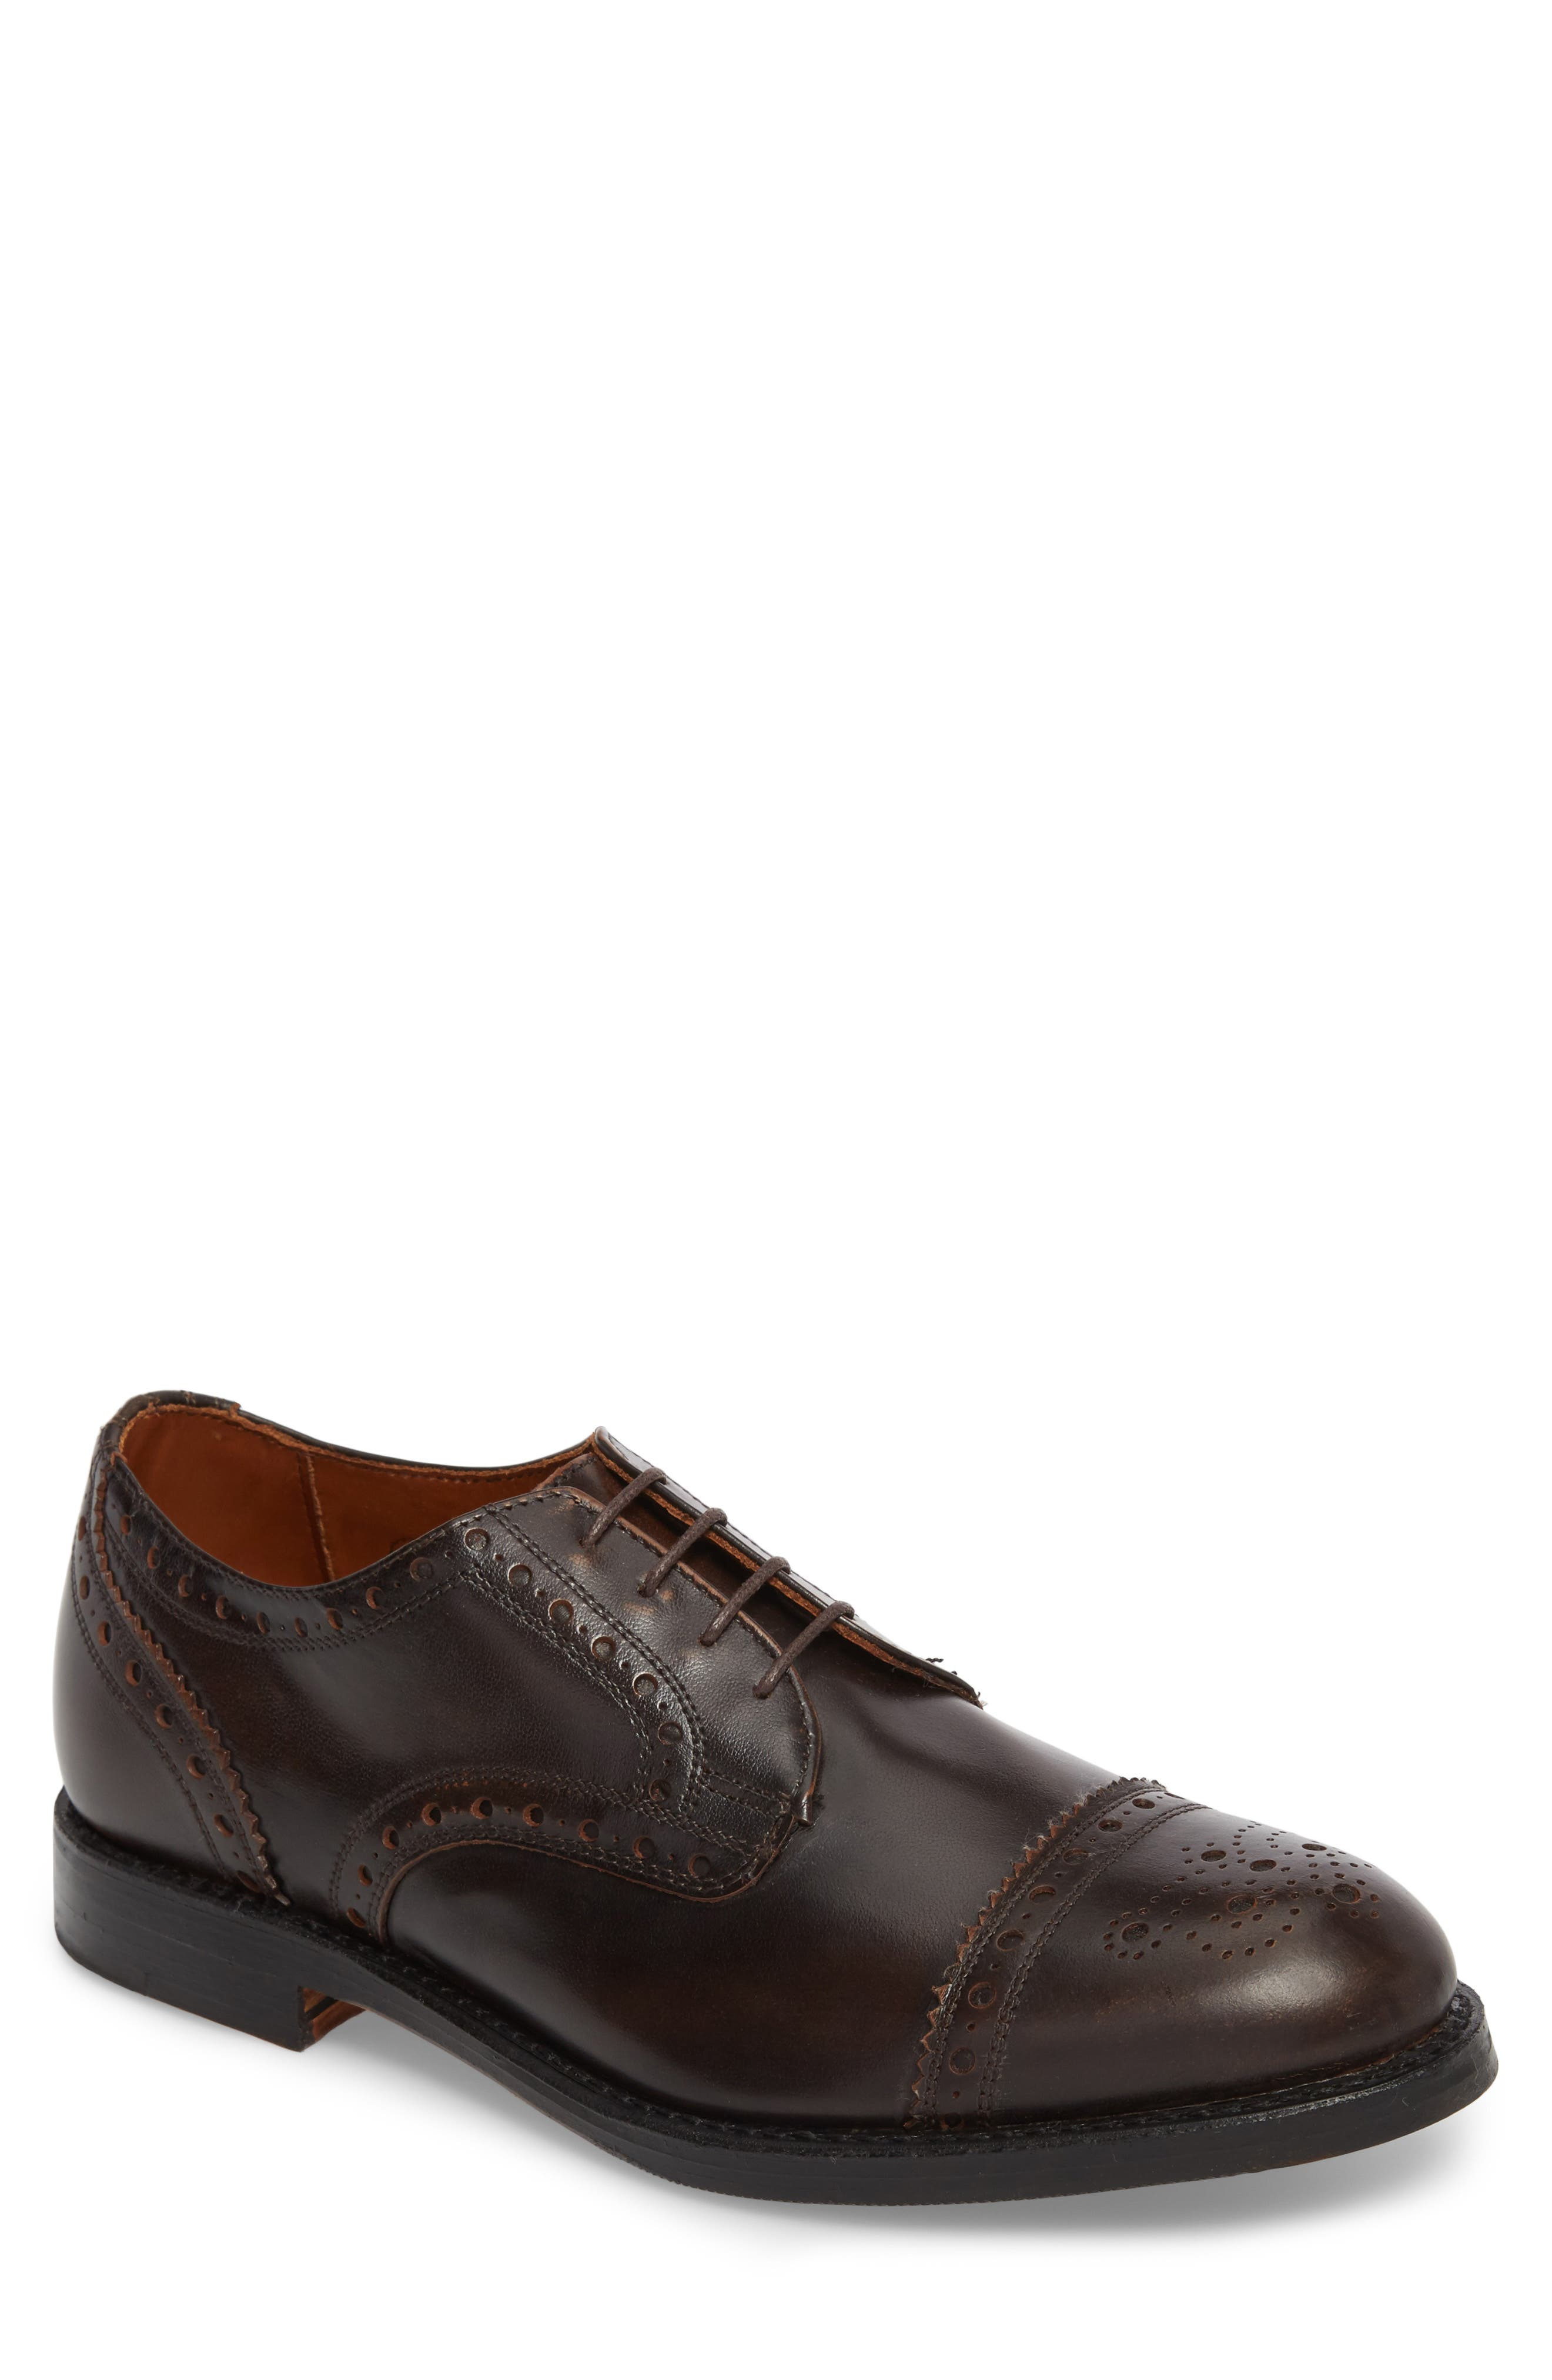 Whitney Medallion Toe Derby,                         Main,                         color, Brown Leather